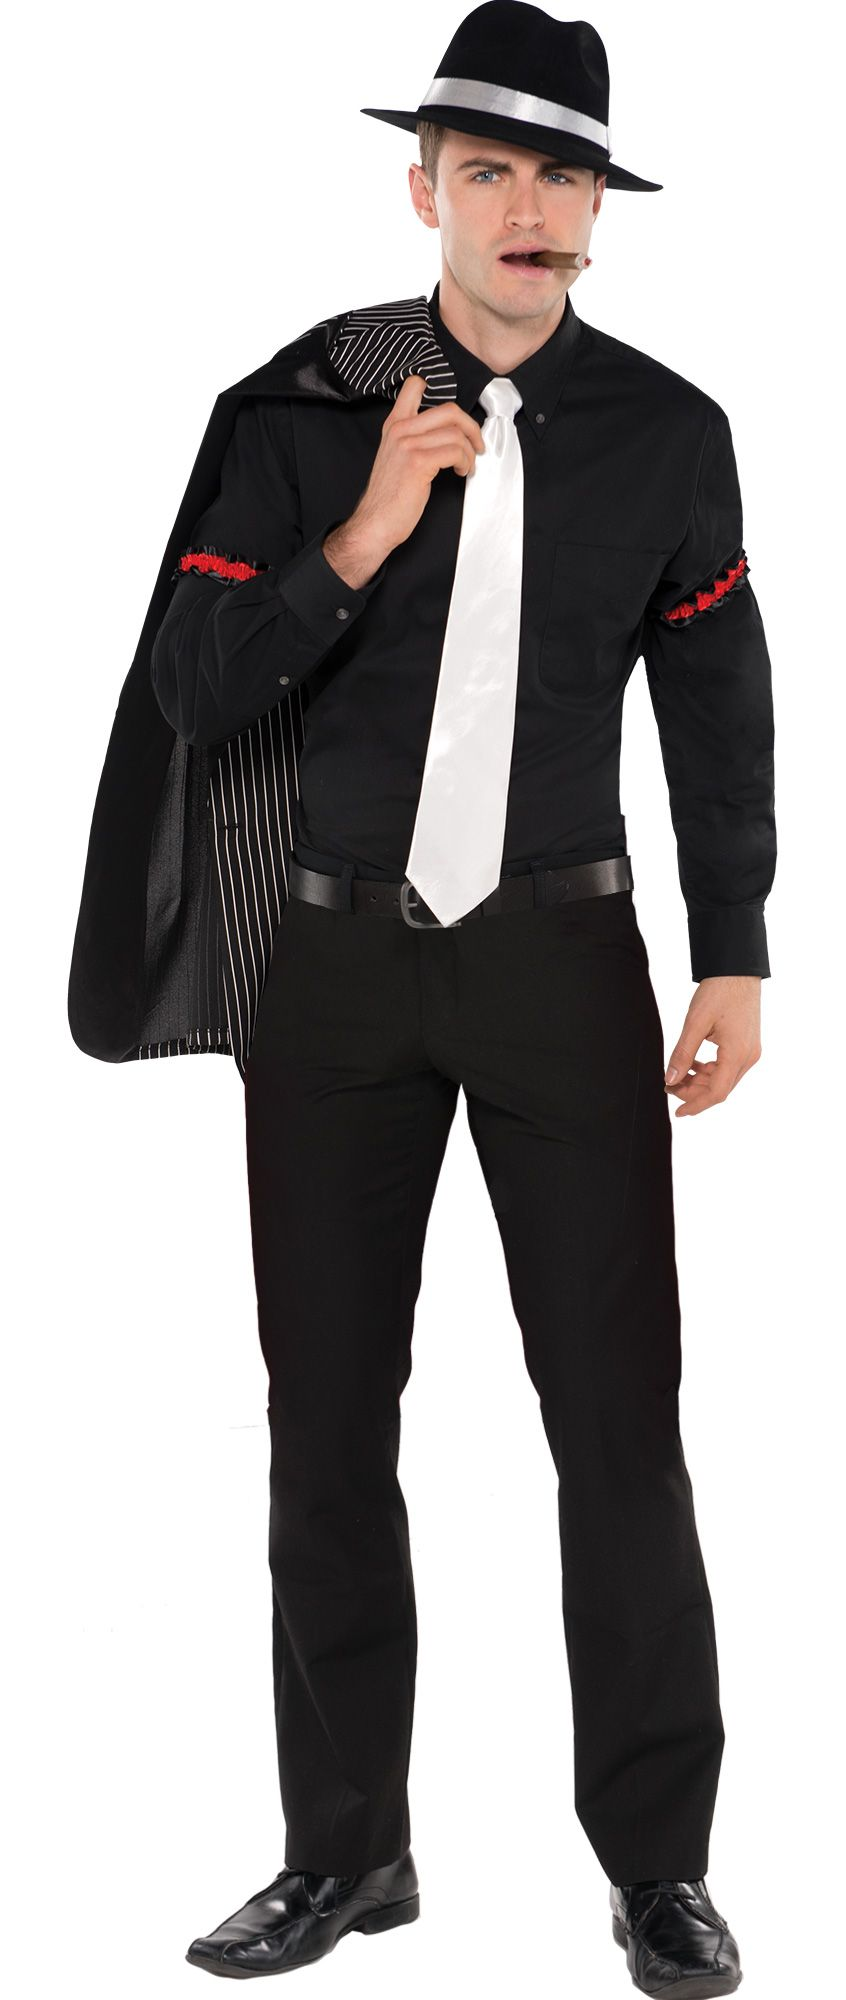 Make Your Costume - Mens Zoot Suit #2